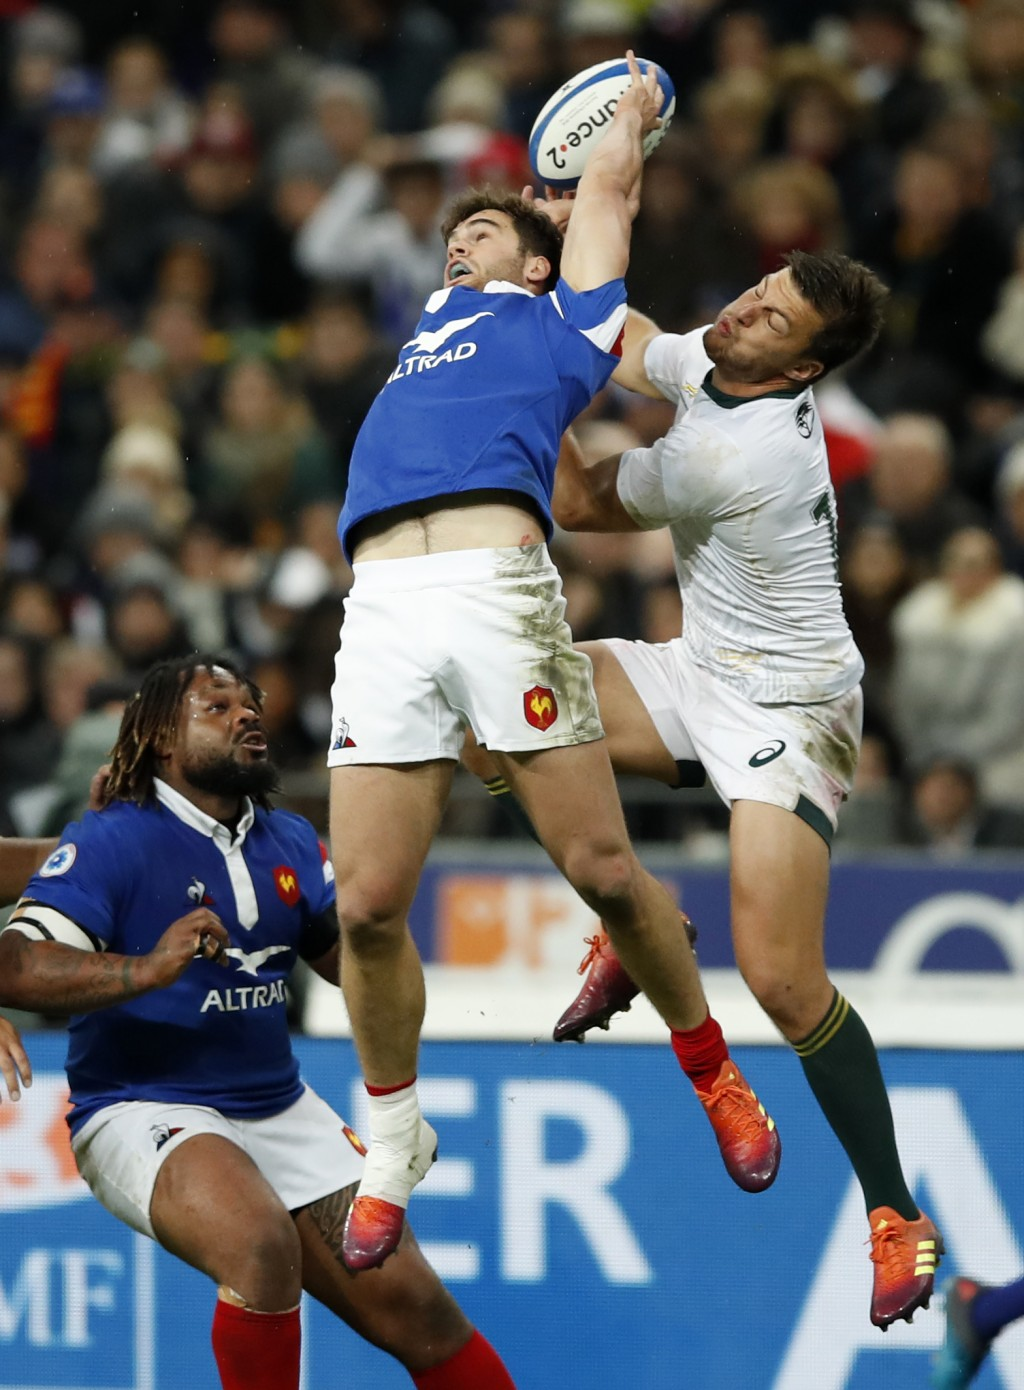 France's Damian Penaud and South Africa's Handre Pollard, right, leap to catch the ball during their rugby union international at the Stade de France